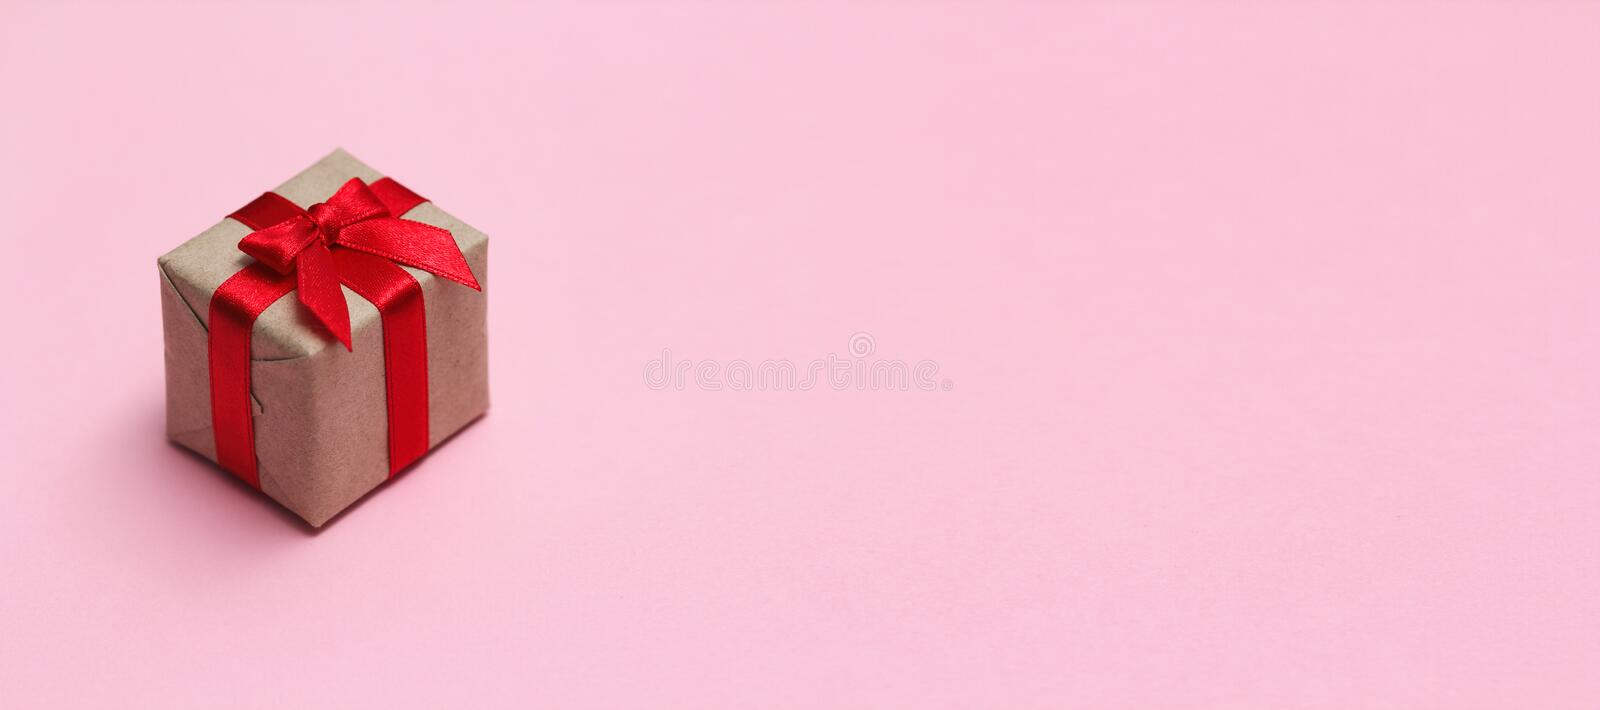 Single gift box on pink solid background. Sale concept. Long horizontal banner photo format. Your text space stock image